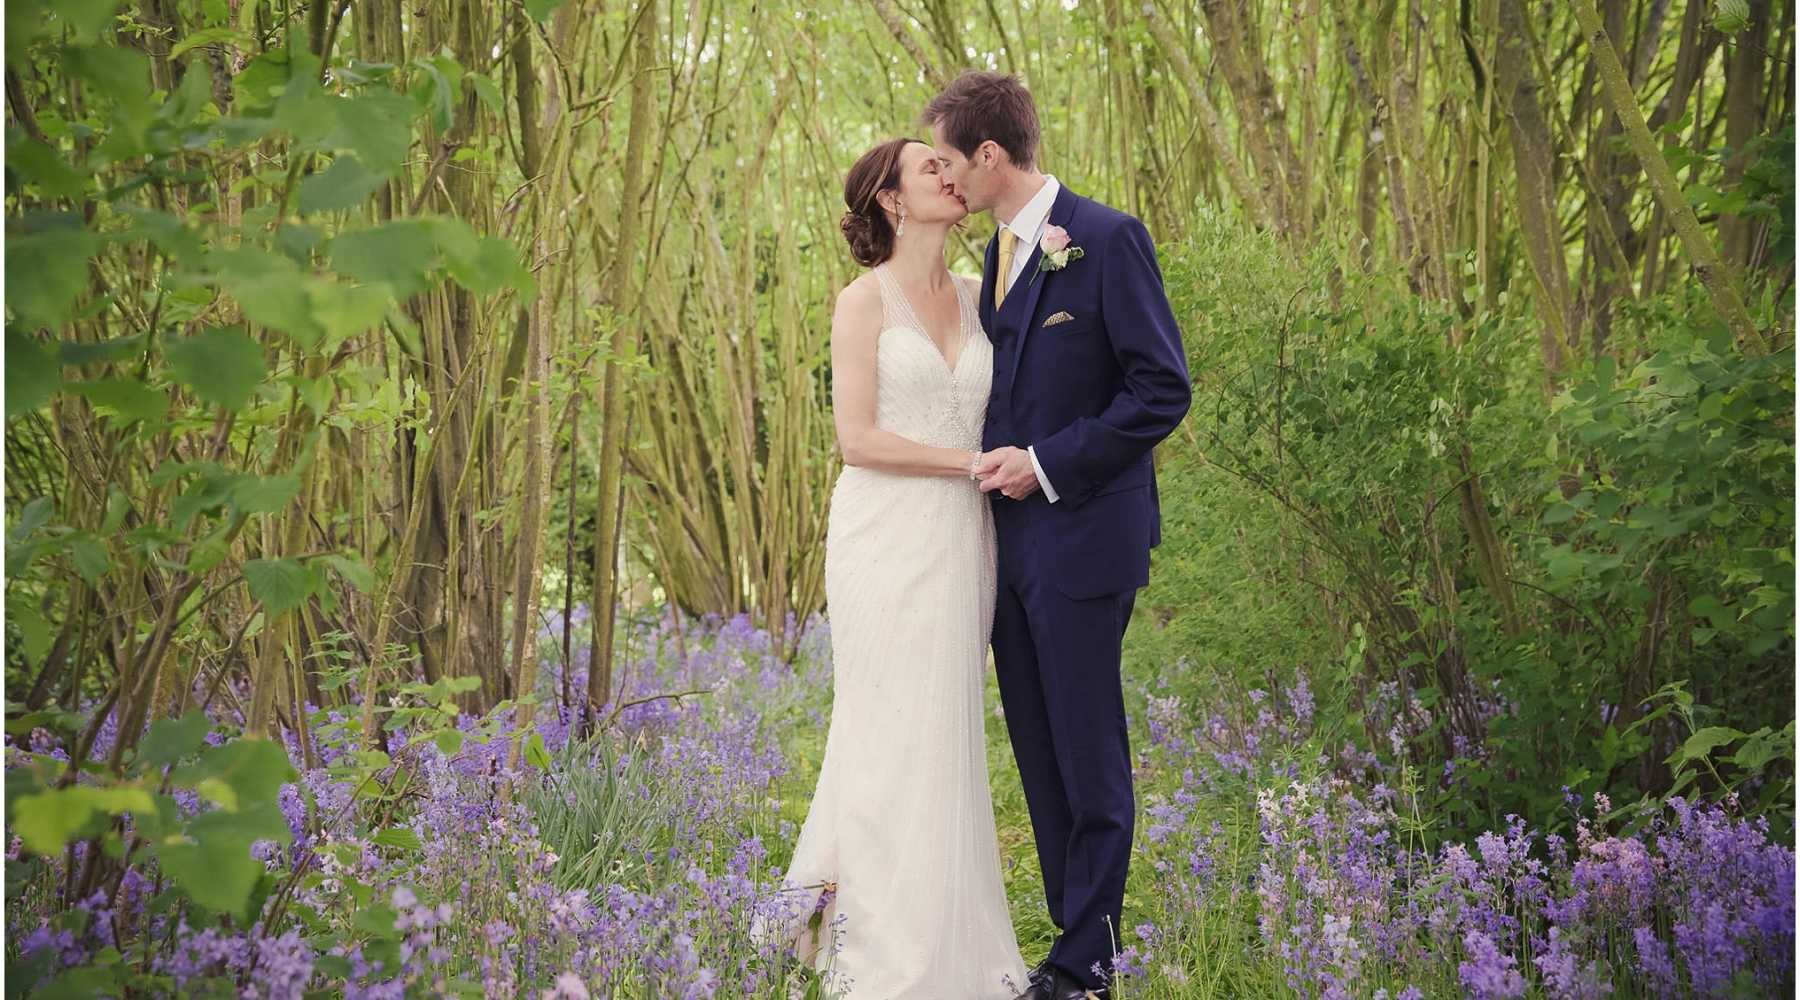 Jasmine Bride, Winchester wedding dress shop, hampshire bridal boutique, berkshire, reading, newbury, salisbury, wiltshire, surrey, west sussex, dorset, bournemouth, southampton, portsmouth, basingstoke, andover, bournemouth, poole